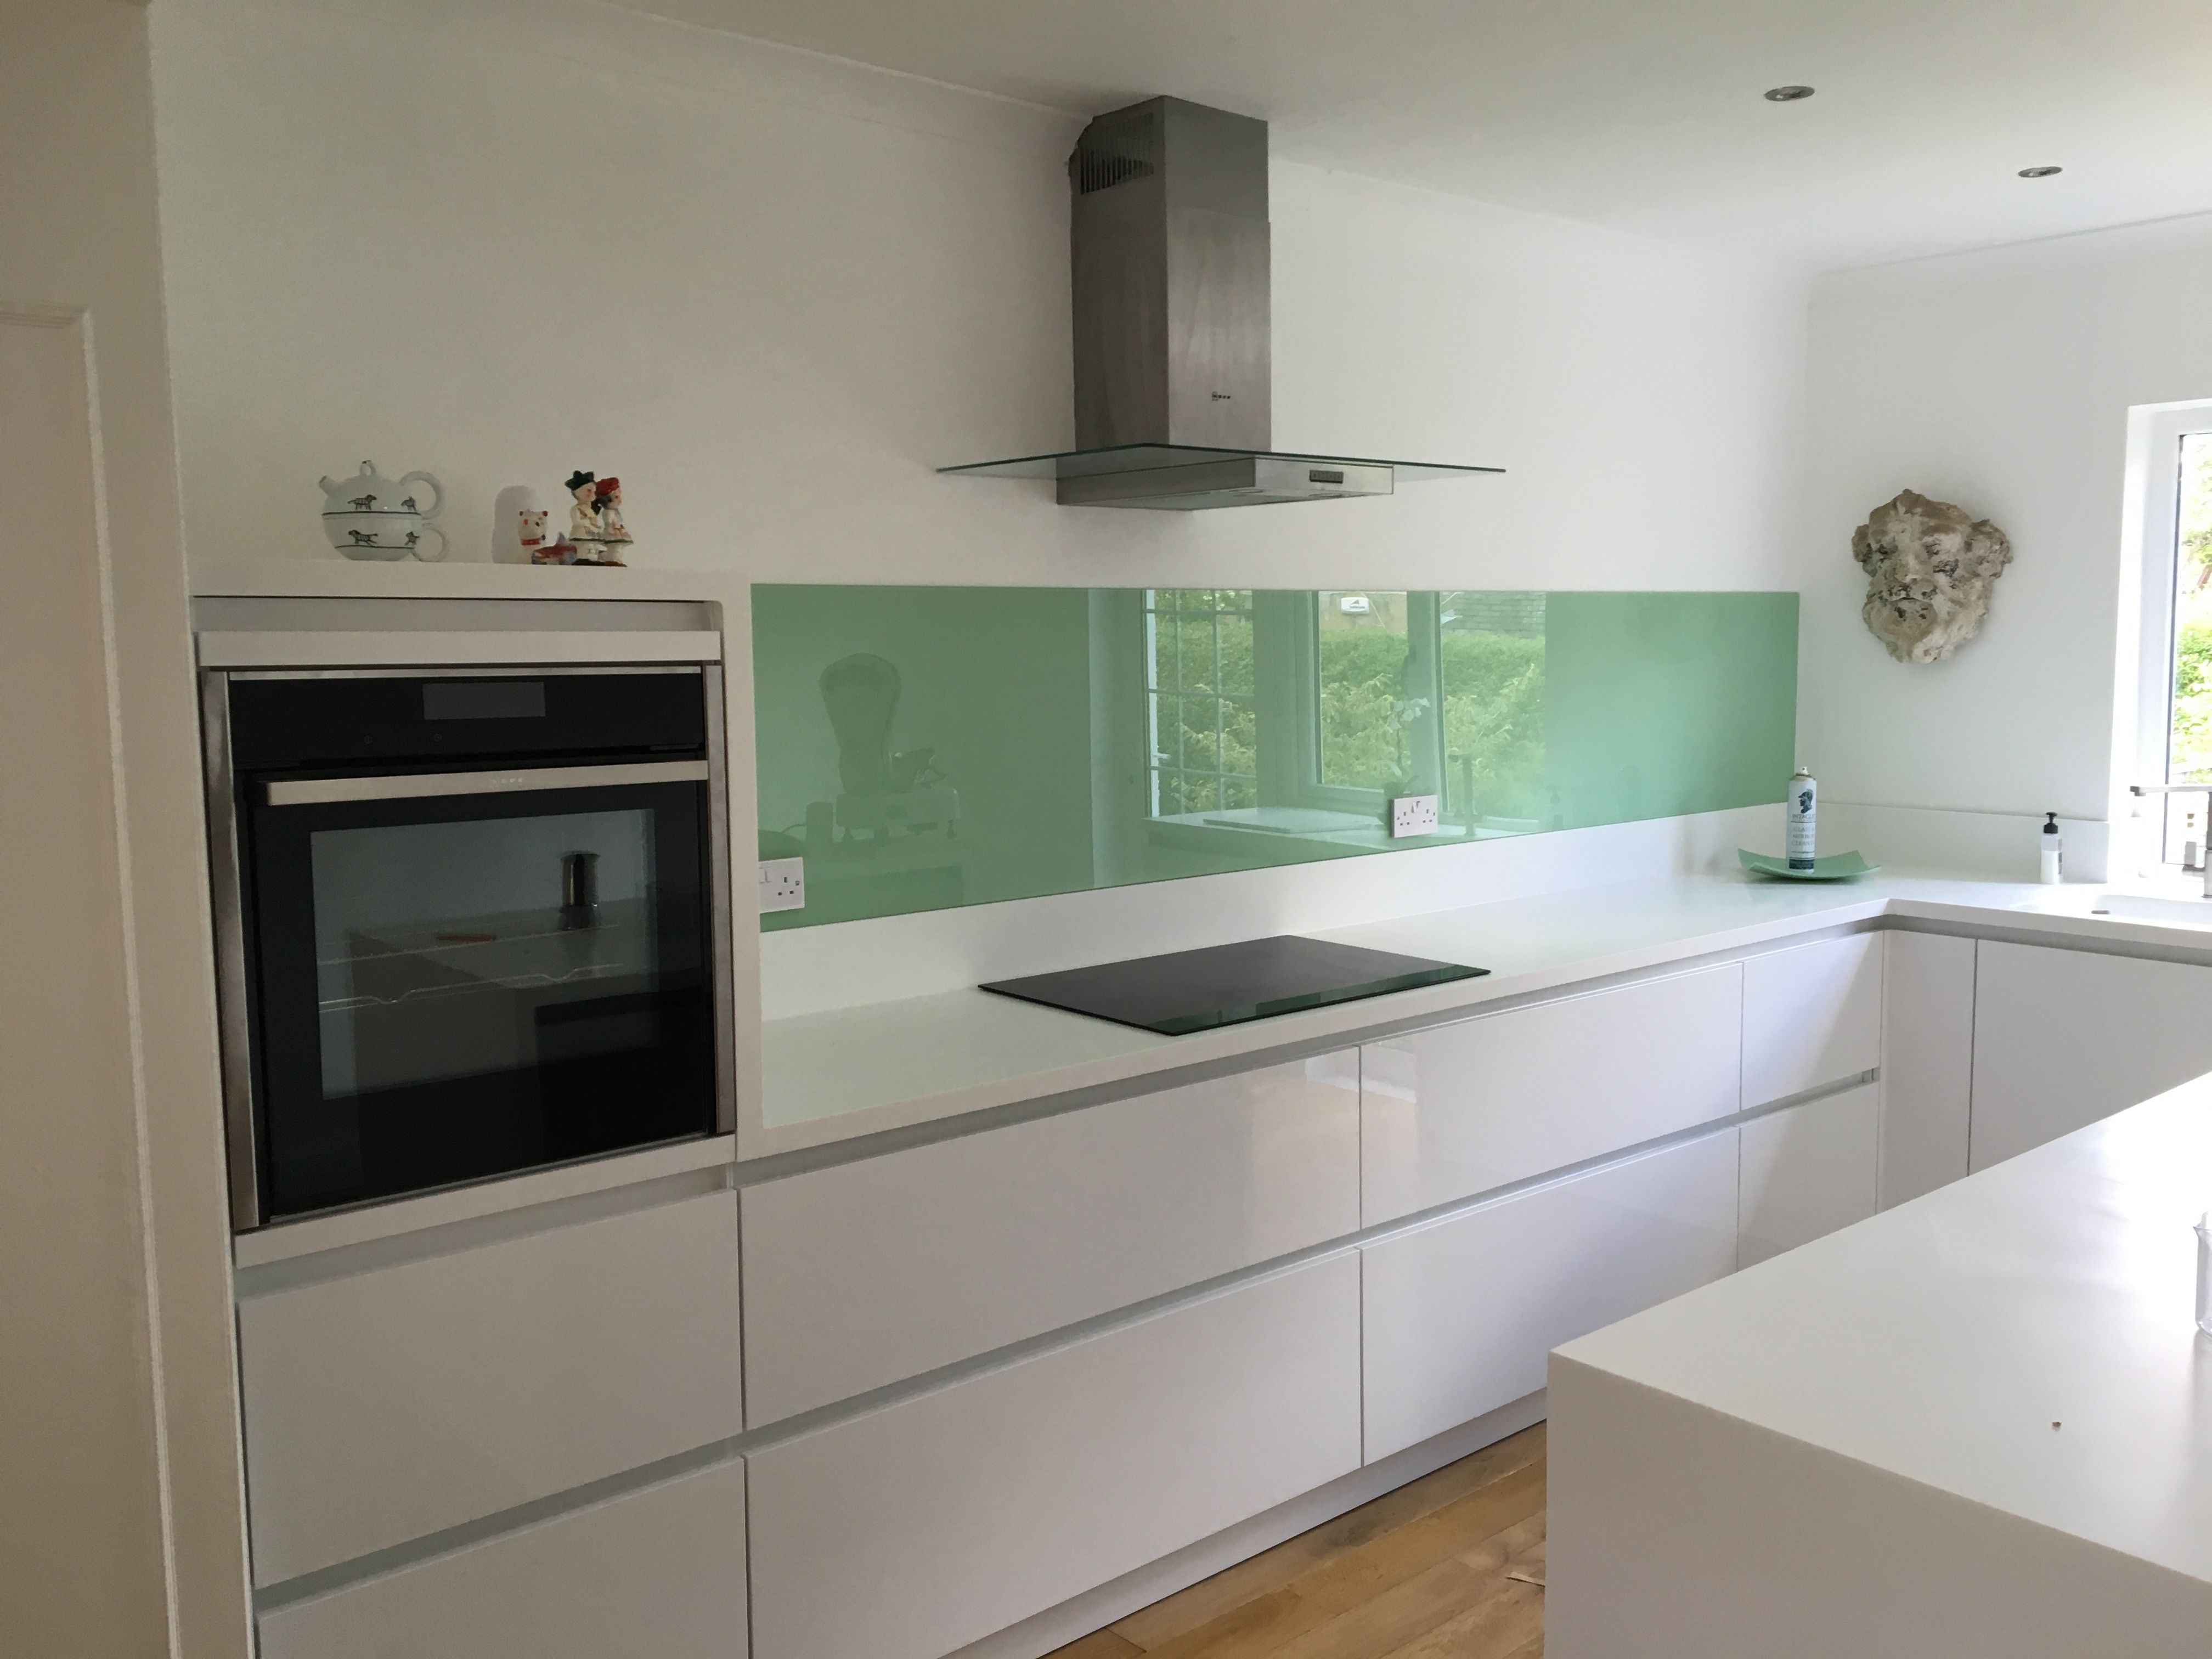 Splashback fitted to finish off client's kitchen in west